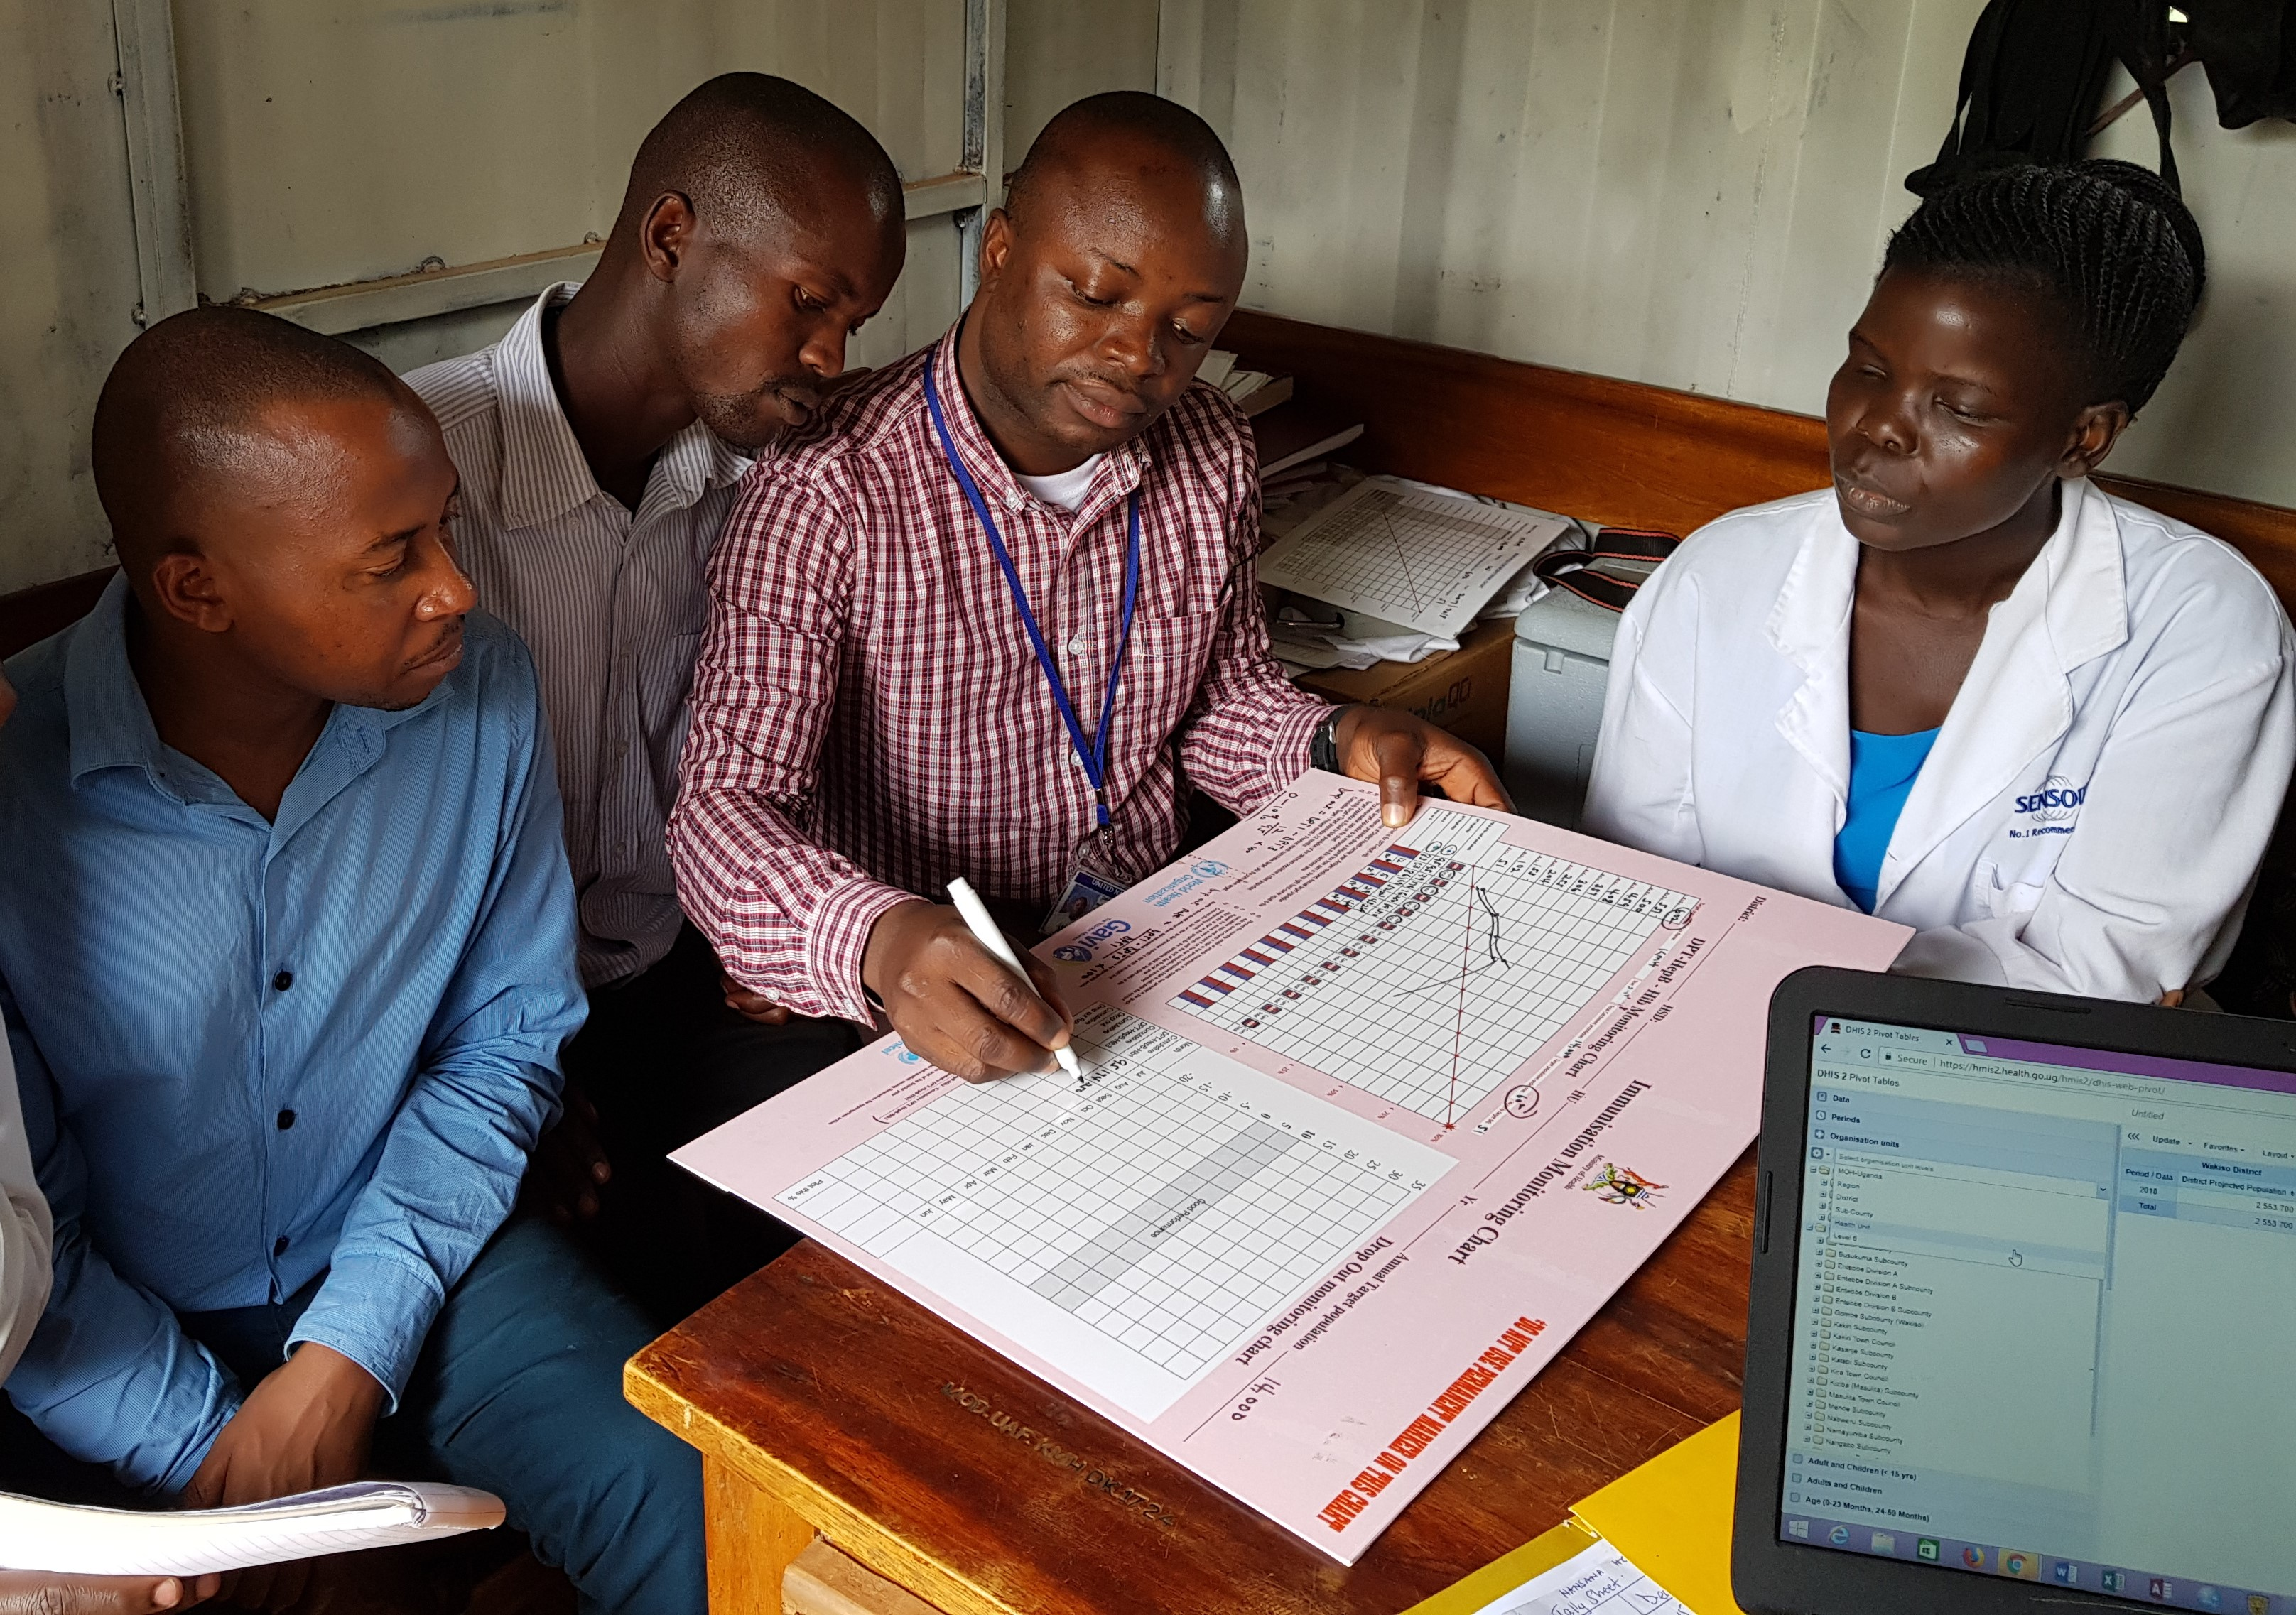 STOP participant training health workers in Uganda on completing vaccine monitoring charts